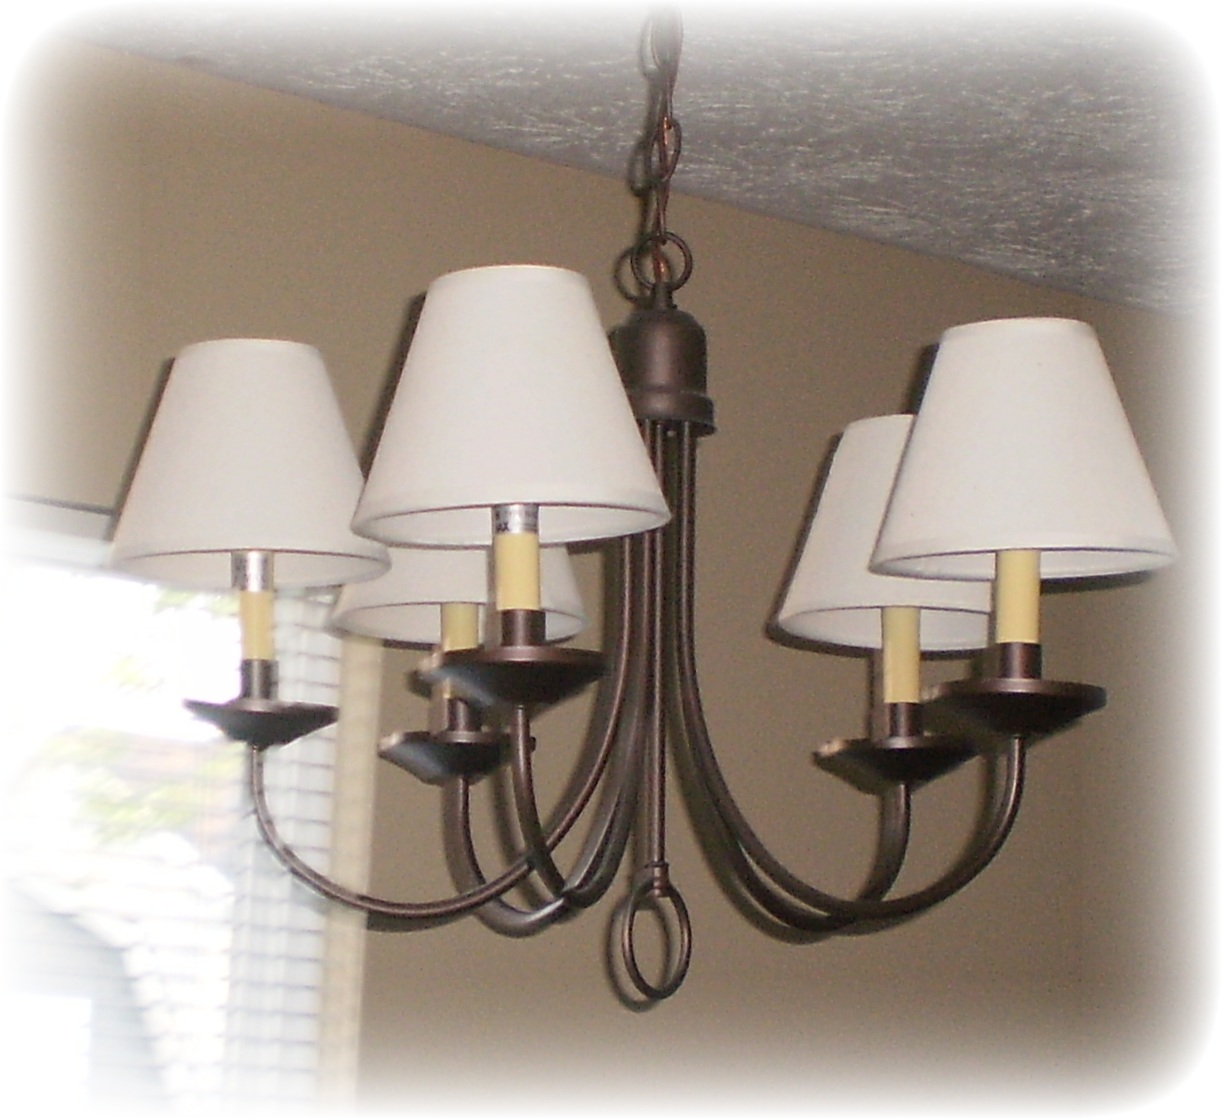 Murano Glass Table Lamps: Accessories Secure Chandelier